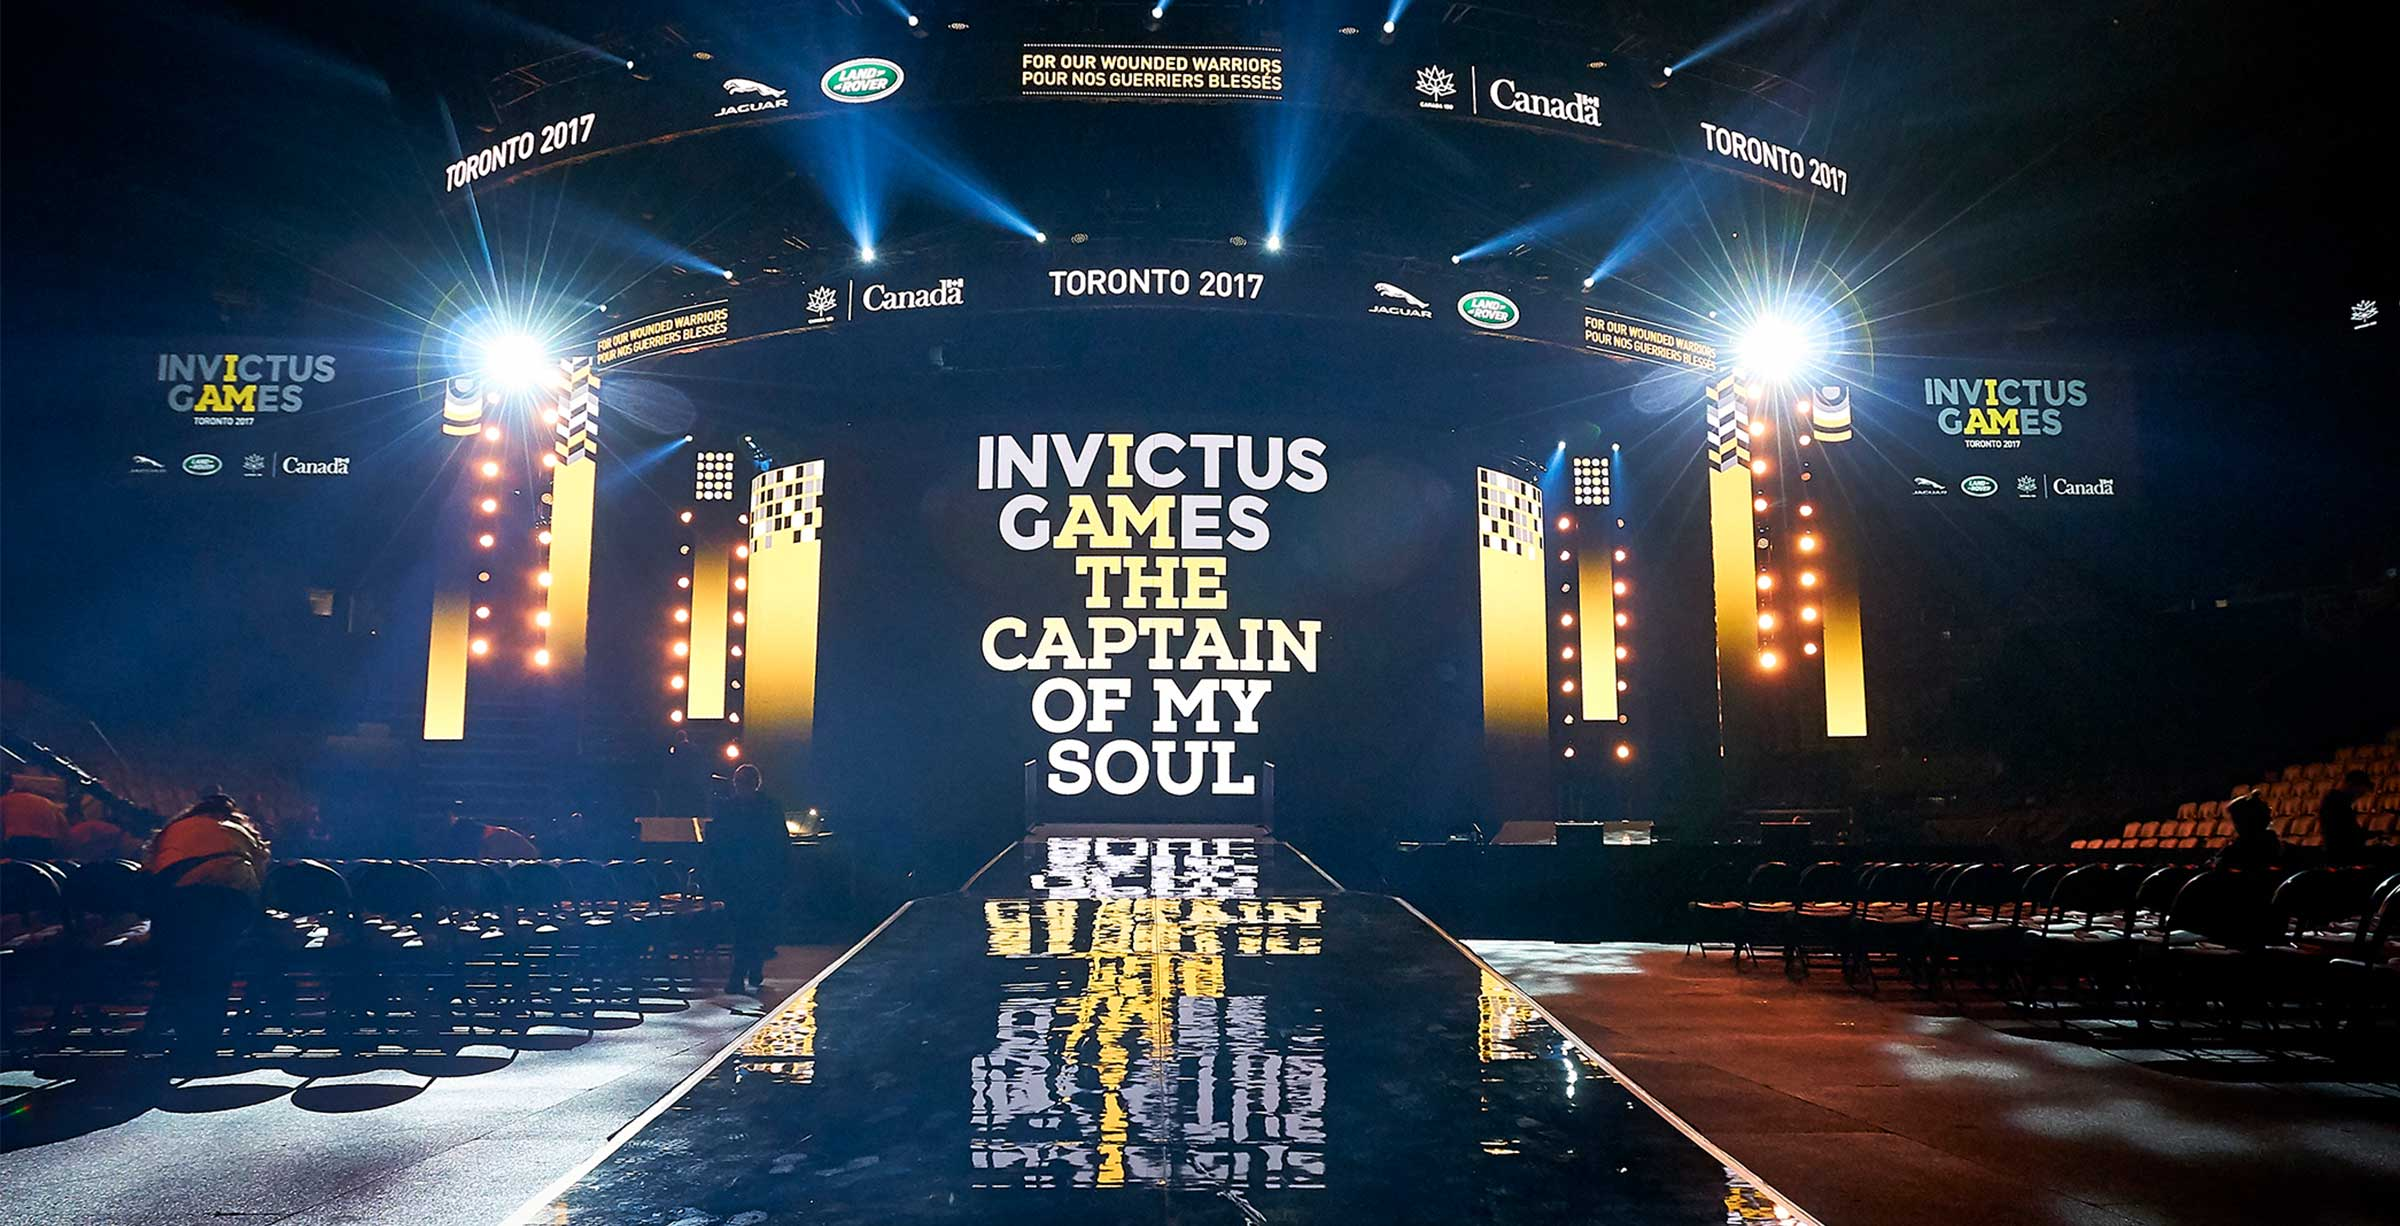 The 2017 Invictus Games